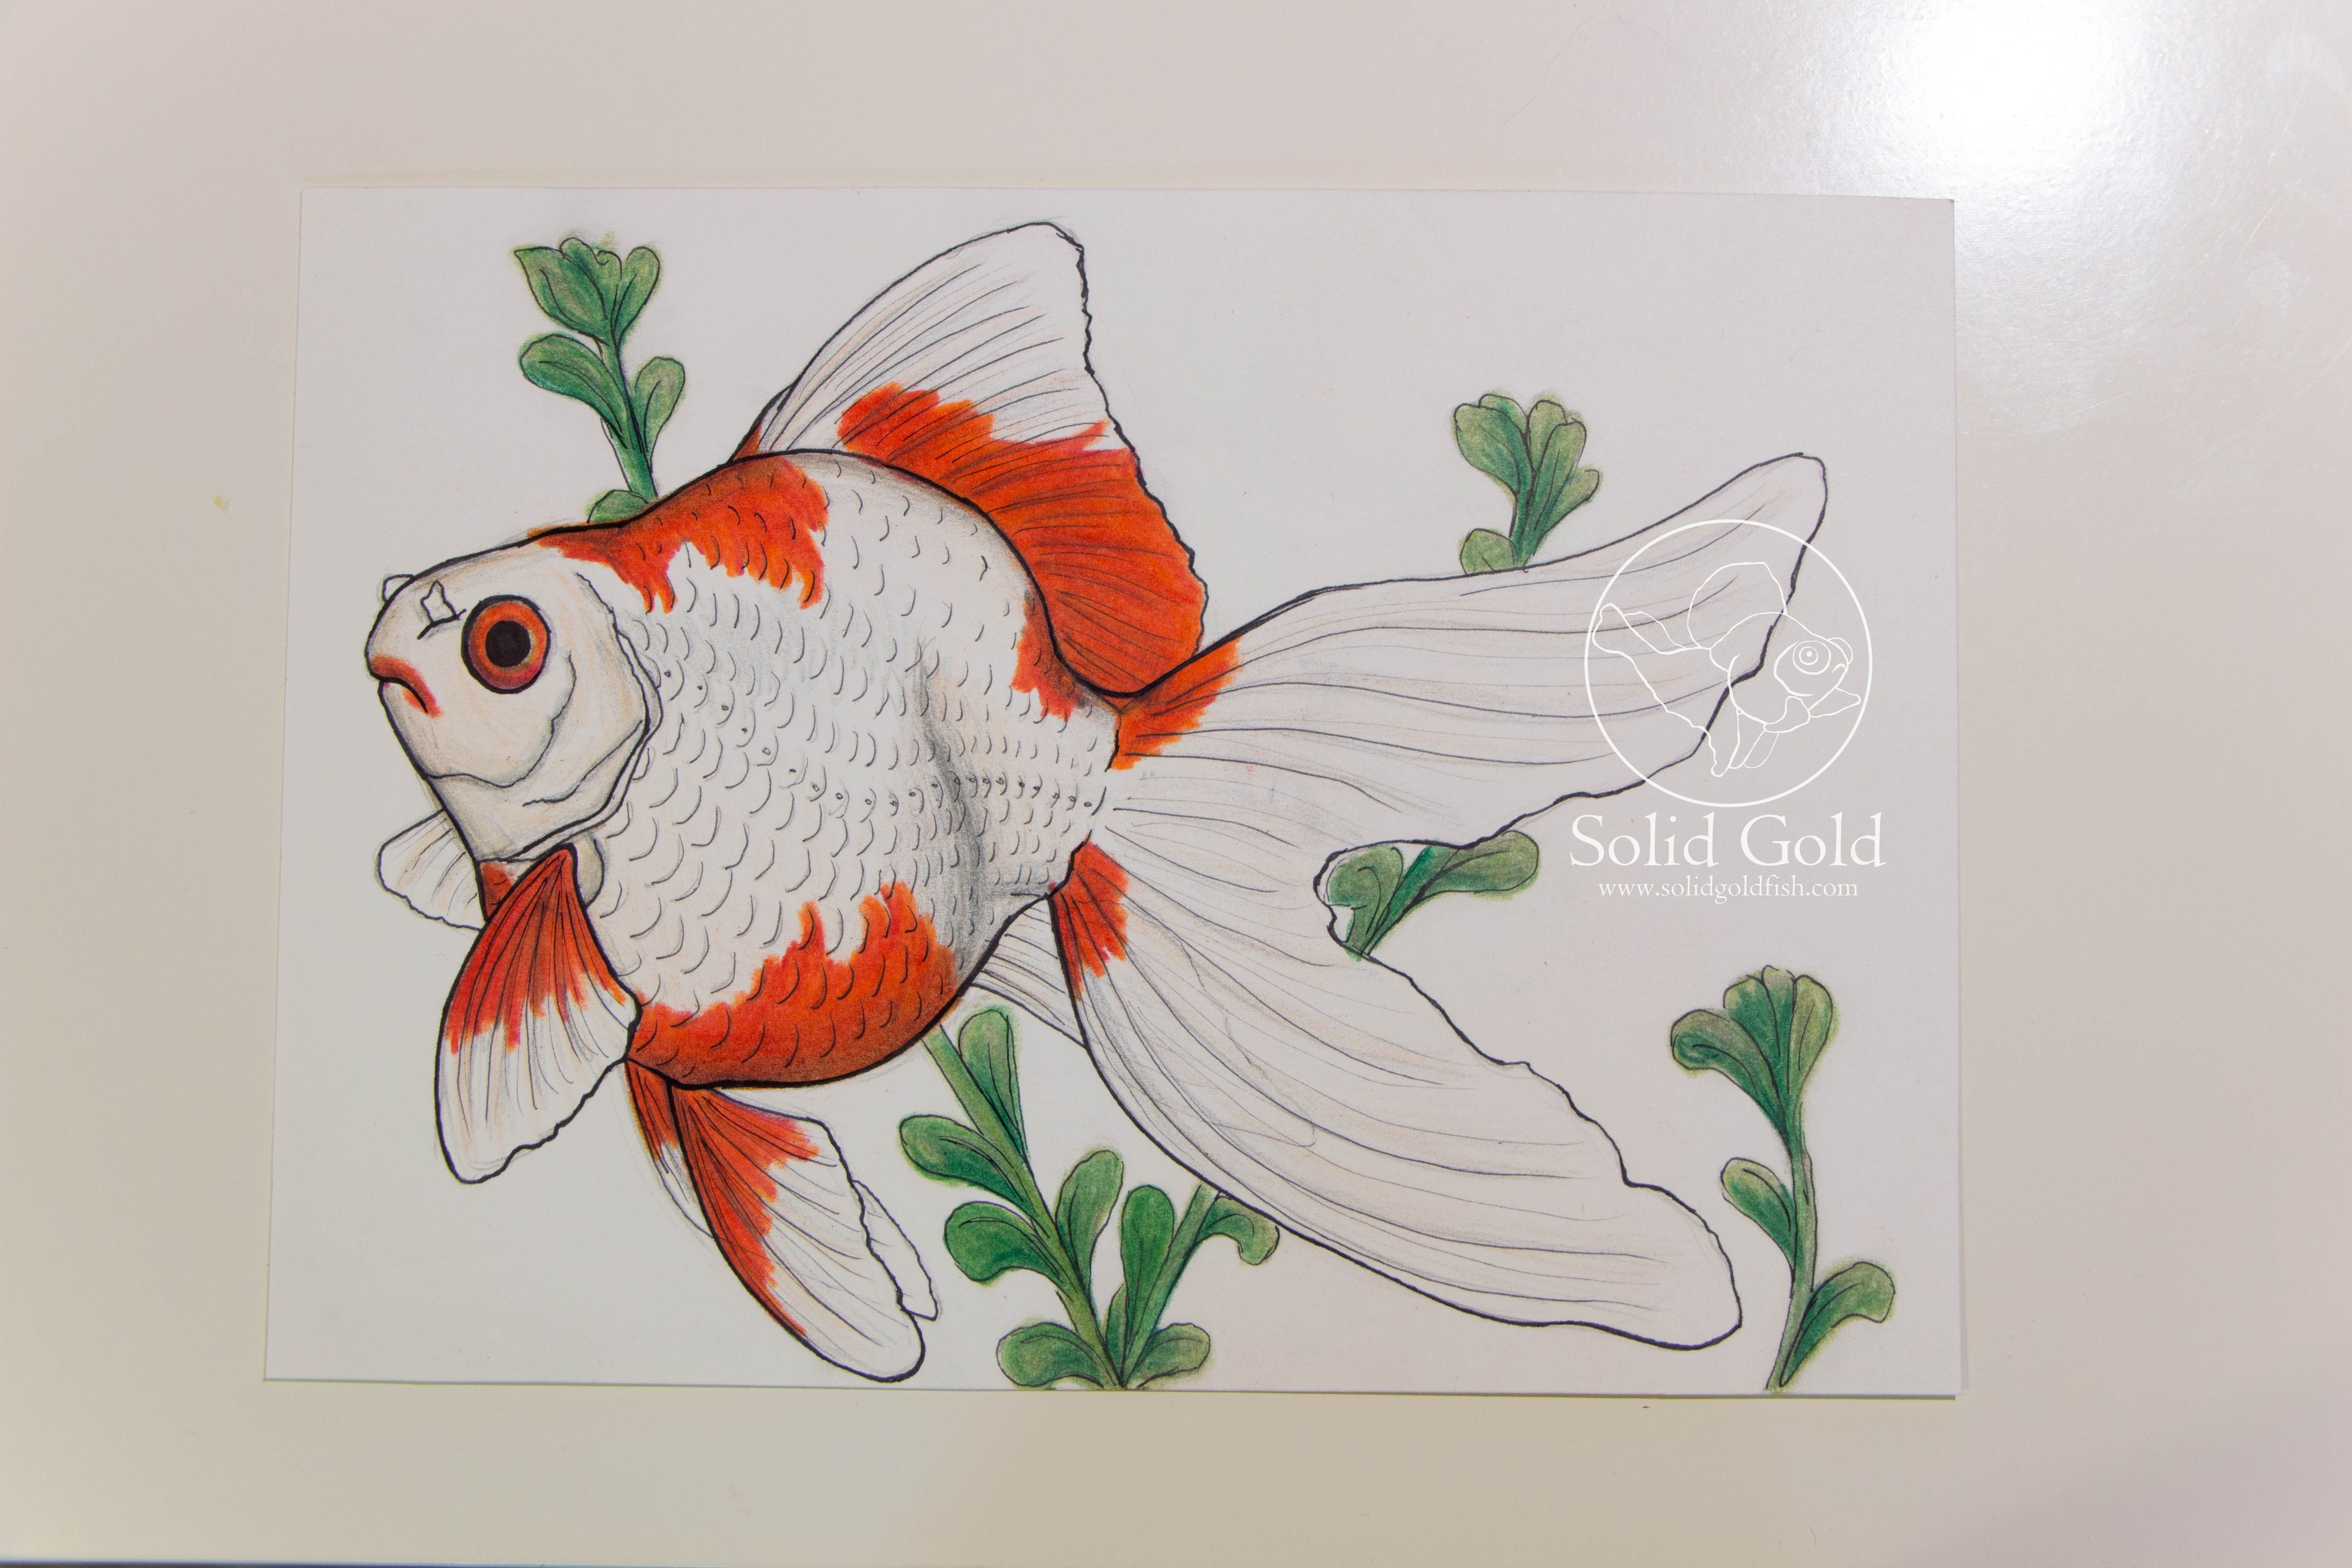 Tamasaba Goldfish Drawing By Jennie Connelly Solidgoldfish Com